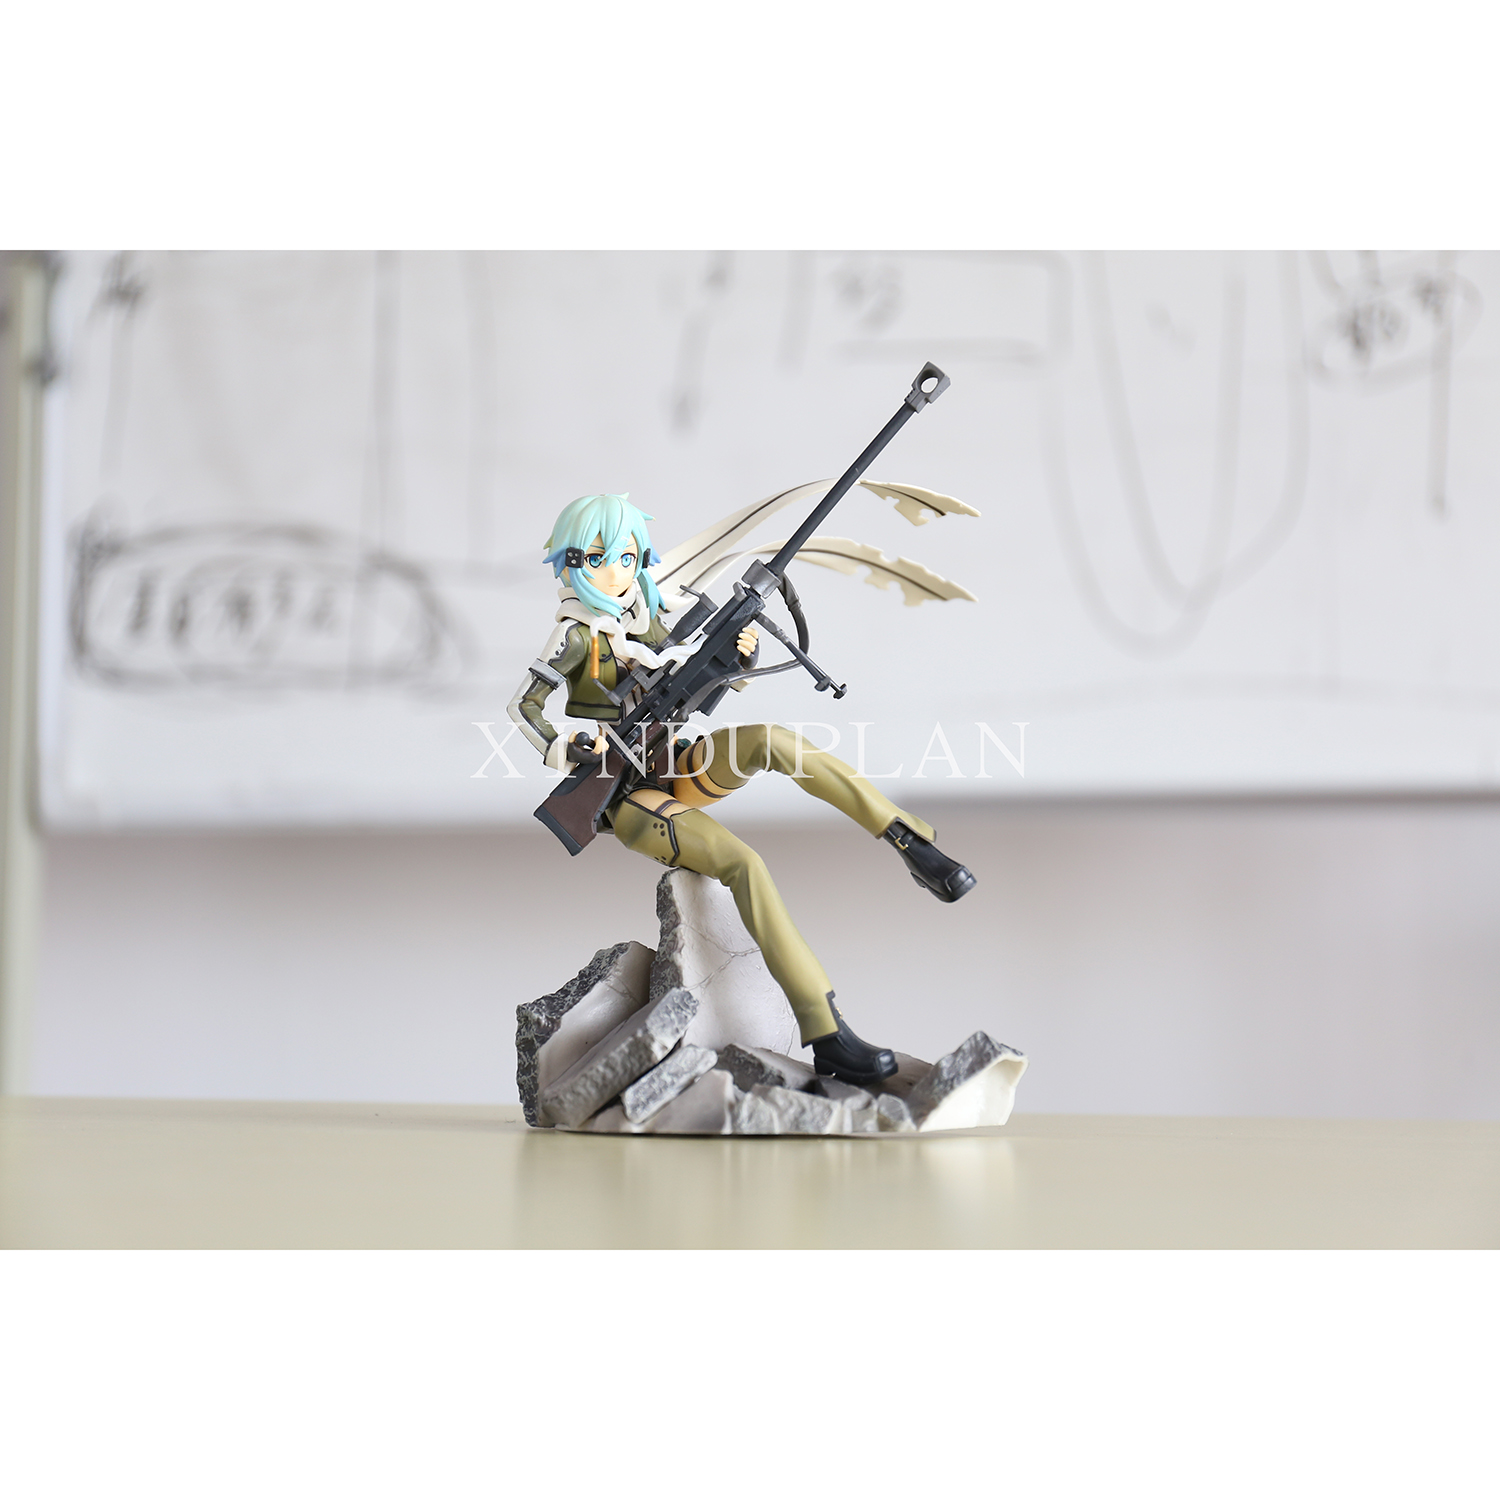 XINDUPLAN Sword Art online SAO Anime Asada Shino Kirito Asuna Espada Action Figure Toys 22cm PVC Kids Gift Collection Model 0446 sword art online action figure figma shino kazuto asuna pvc 150mm toys anime sword art online series